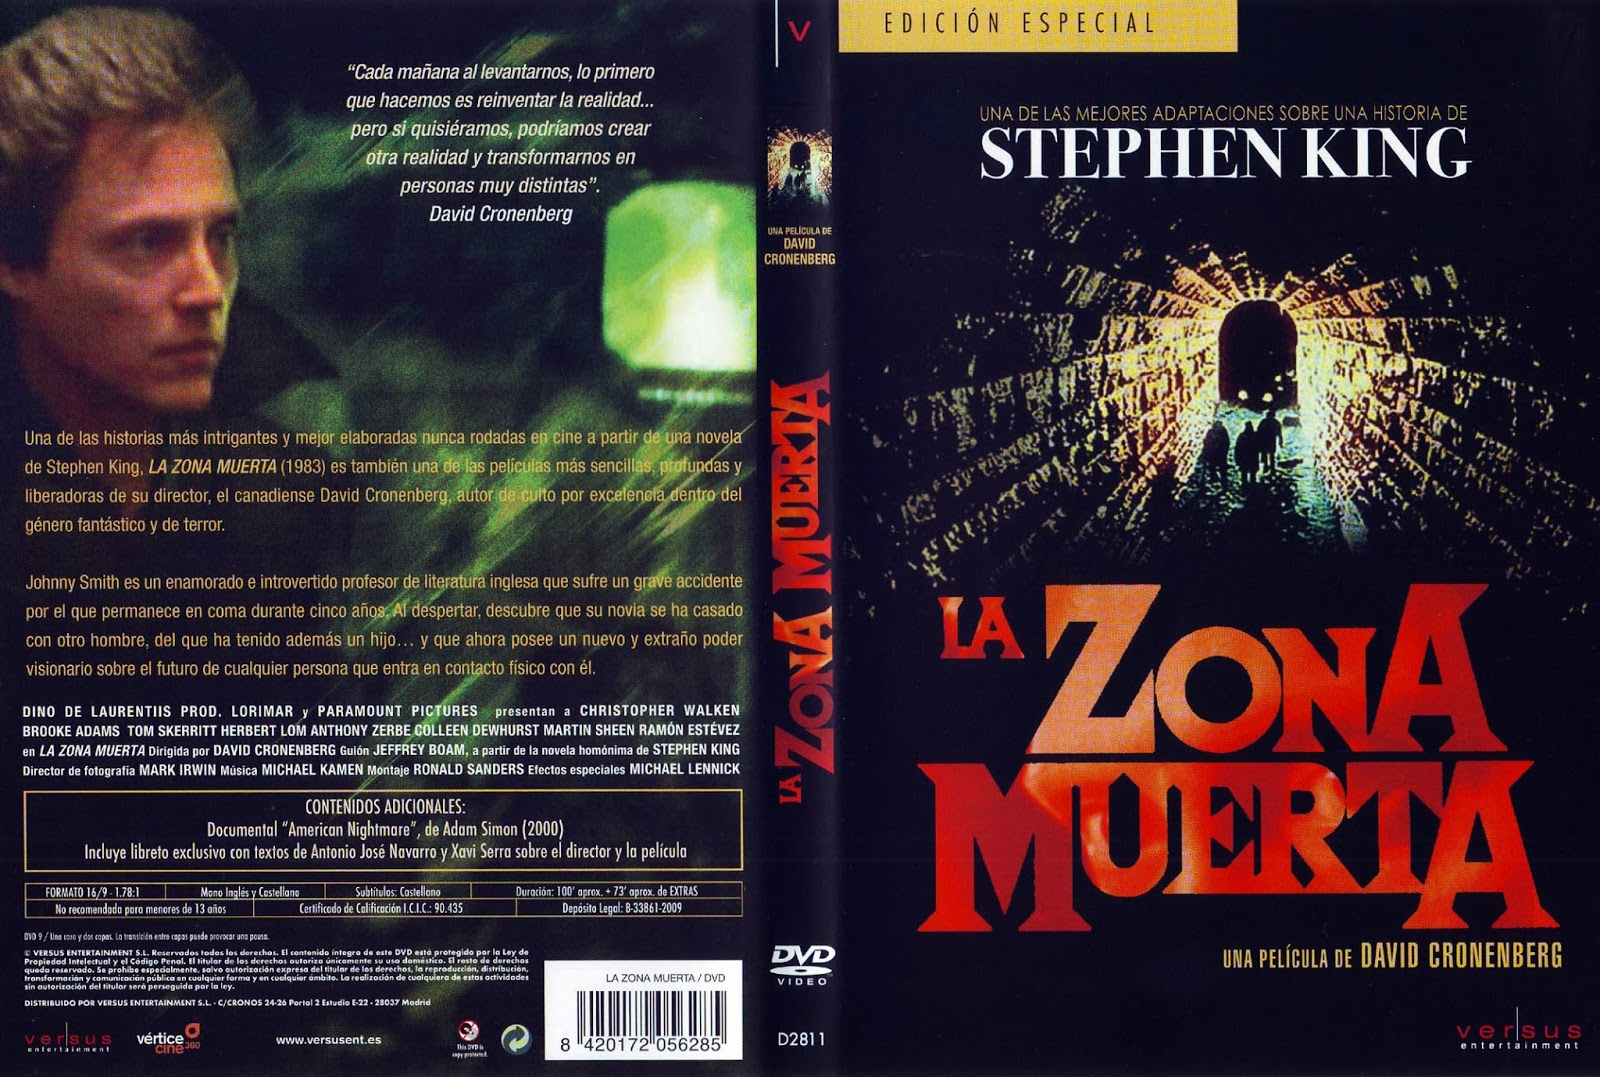 La Zona Muerta (The Dead Zone) Hdrip Castellano 1983